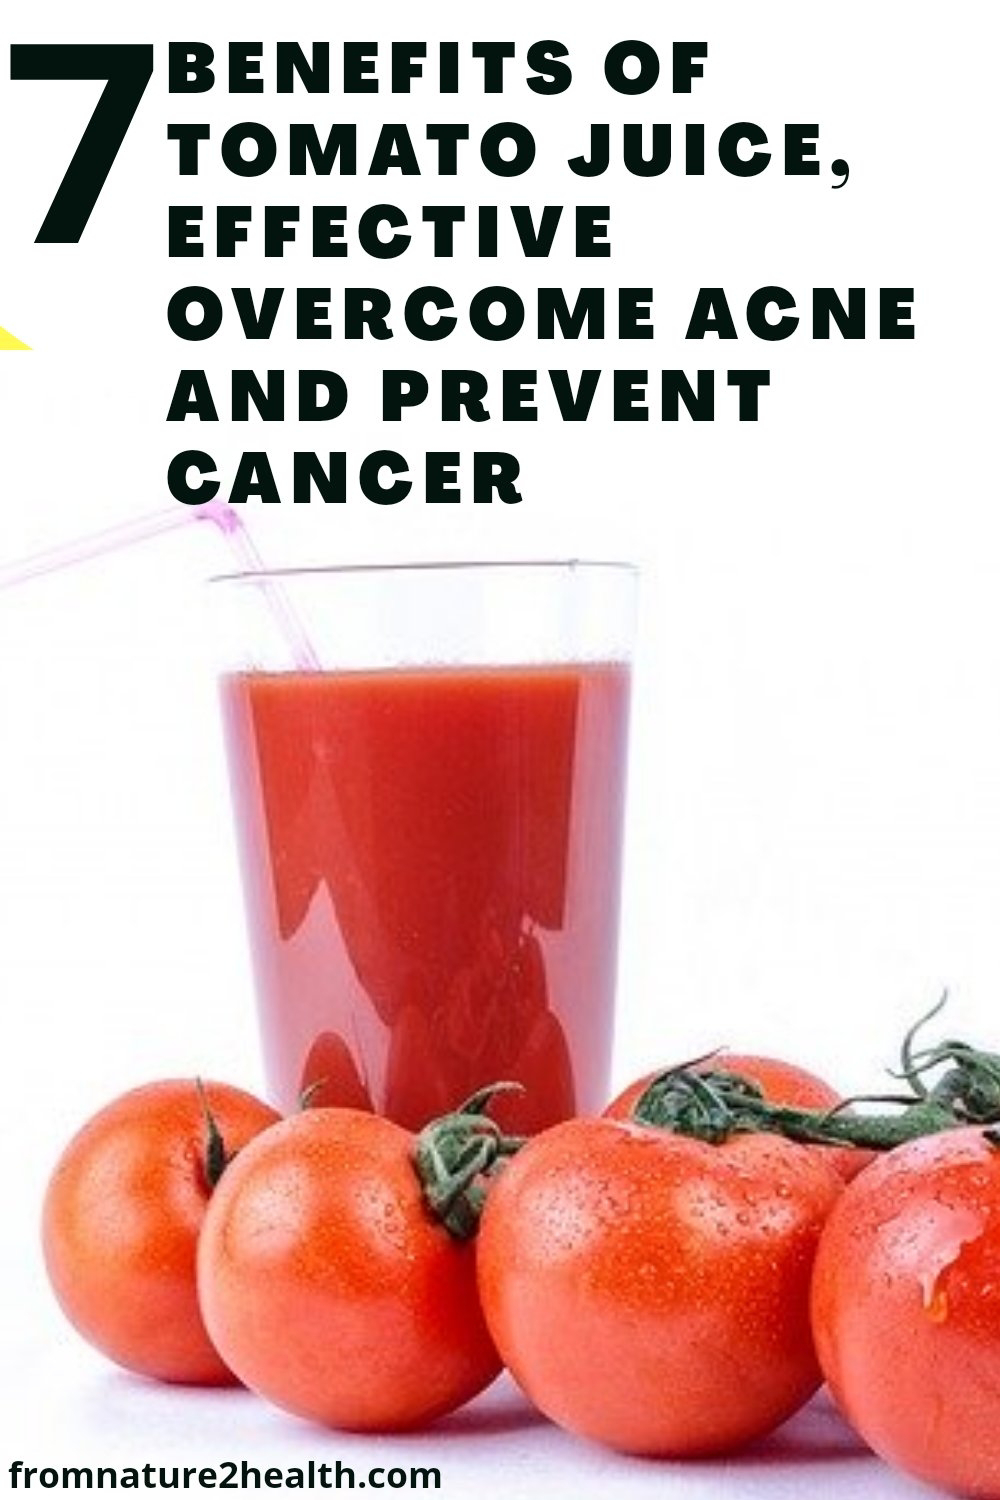 7 Benefits of Tomato Juice, Effective Overcome Acne and Prevent Cancer